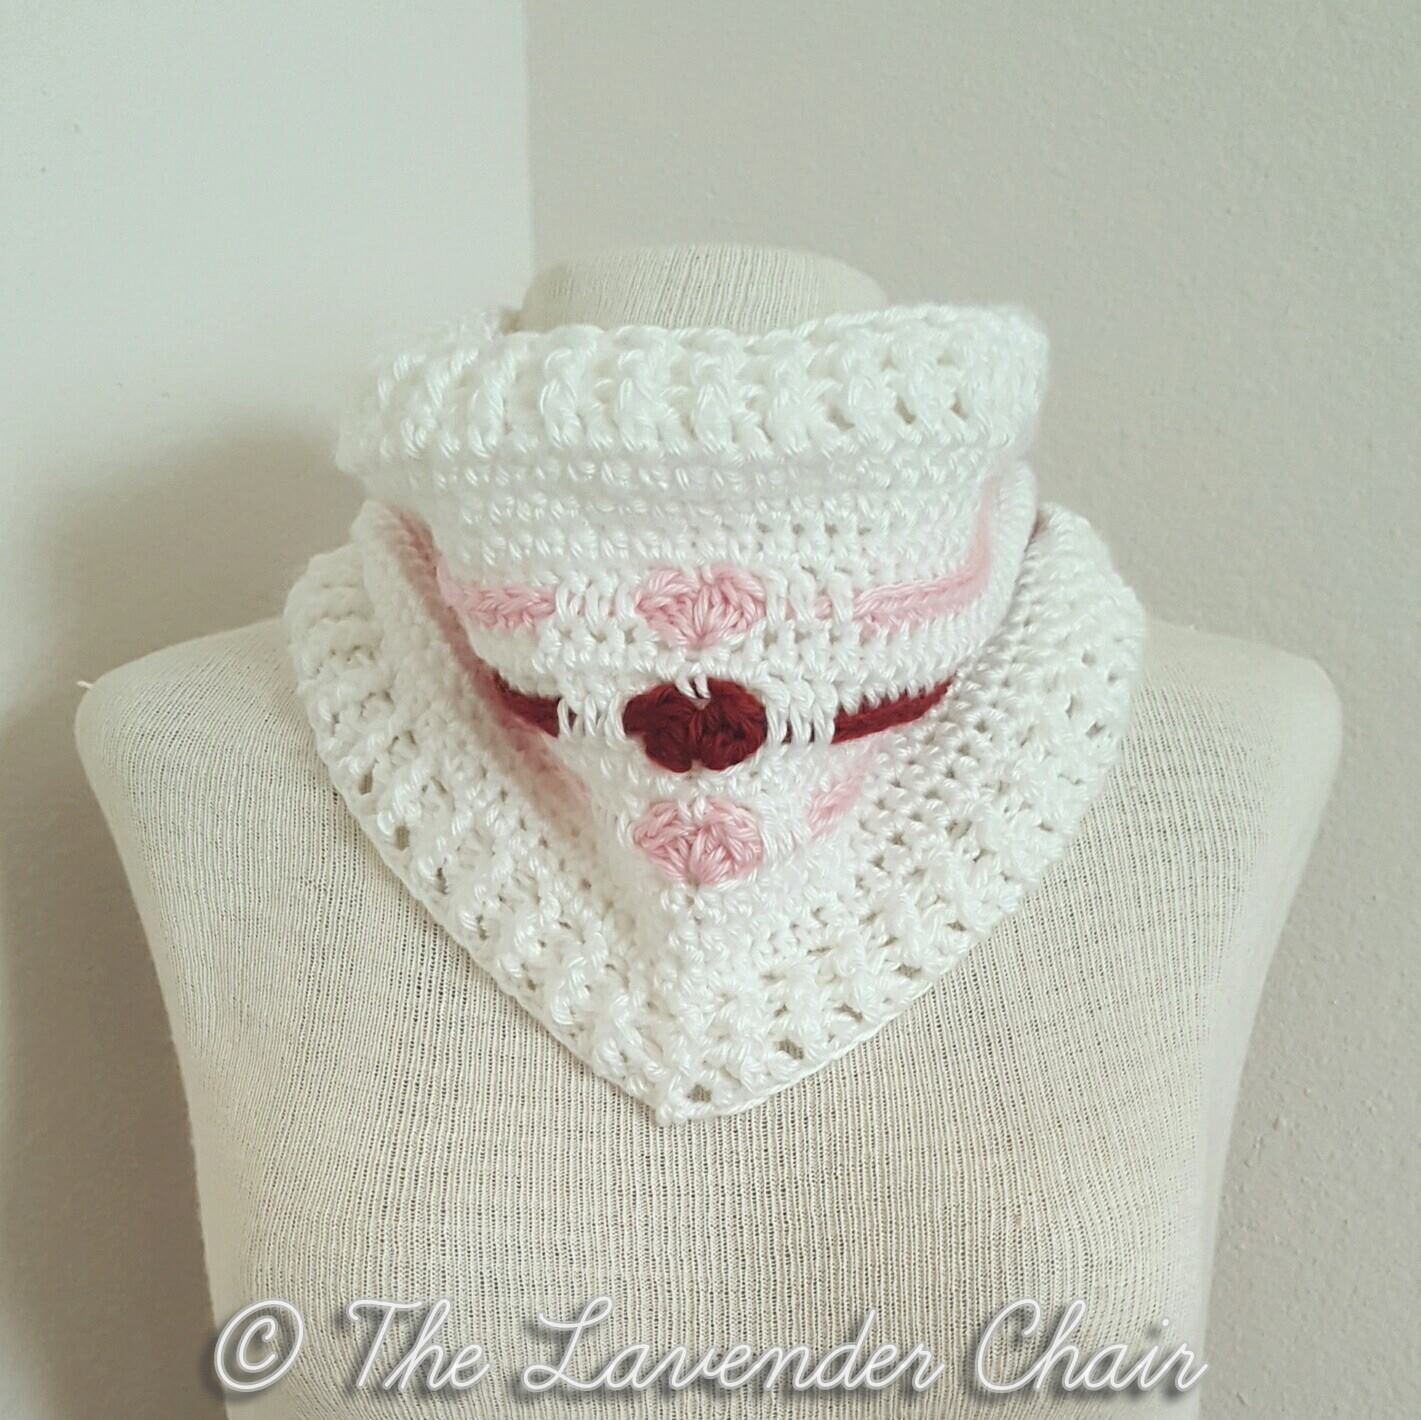 Love Me Tender Cowl Crochet Pattern - The Lavender Chair | crochet ...